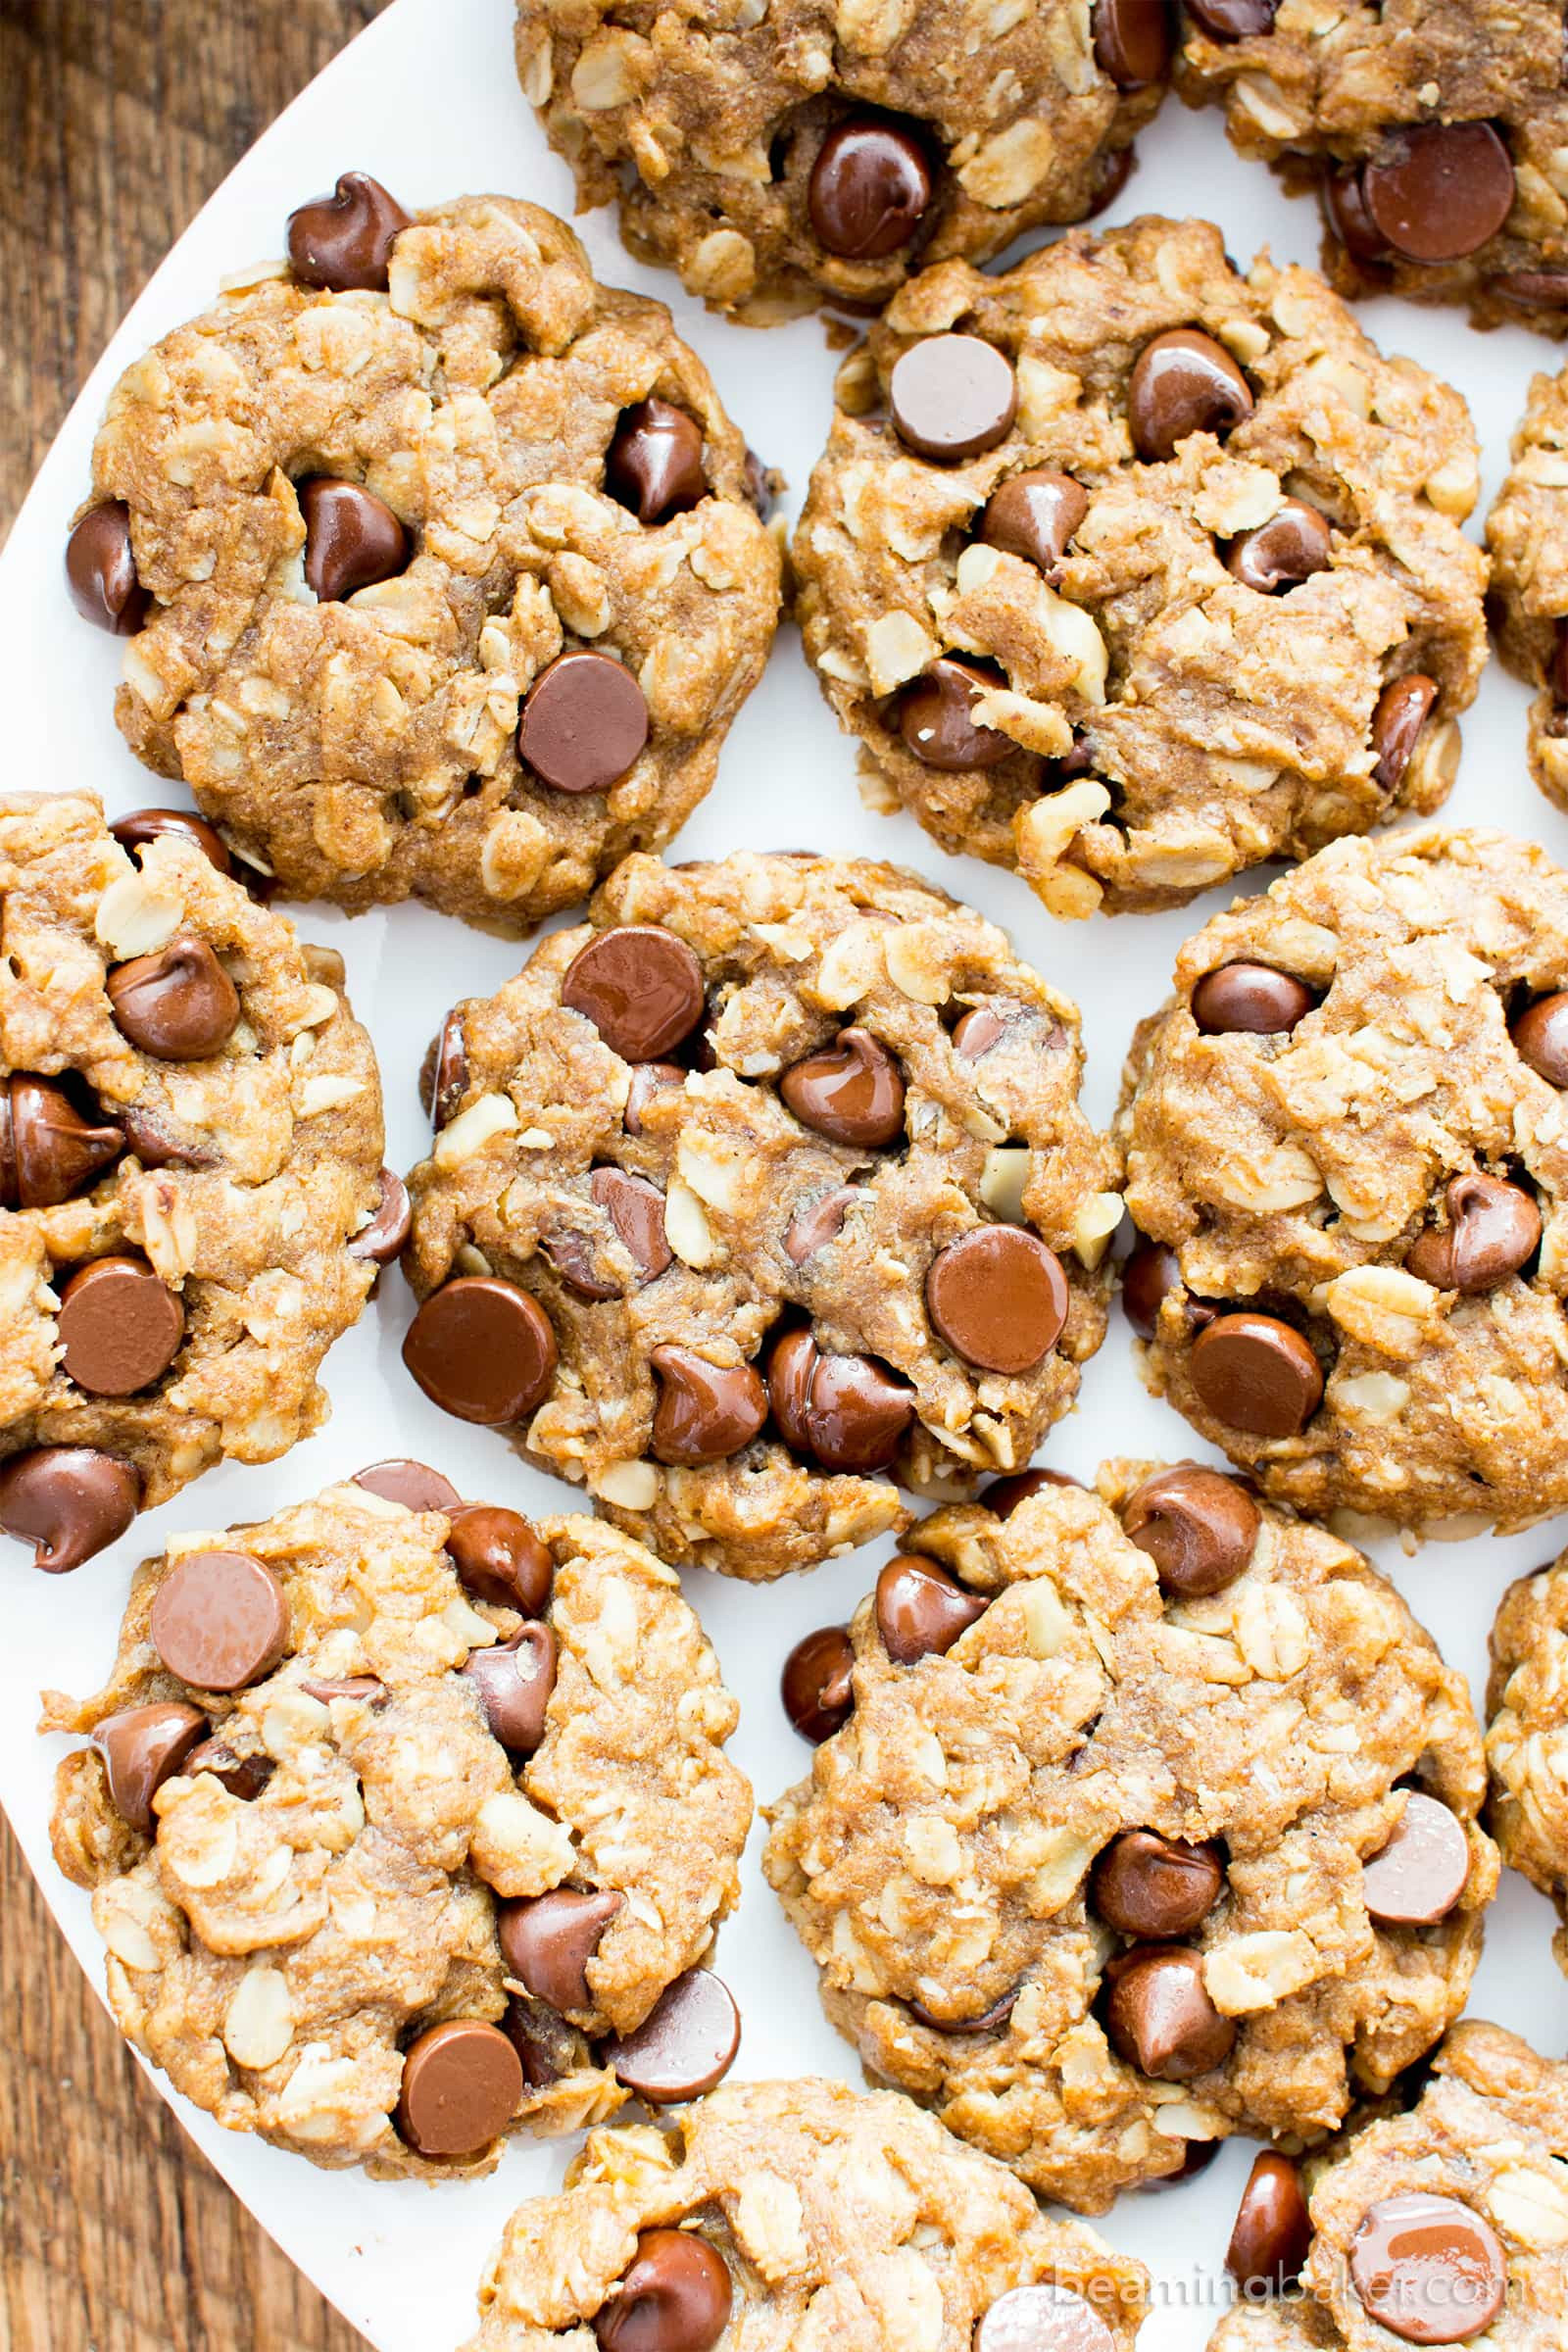 Peanut Butter Oatmeal Cookies Healthy  Easy Gluten Free Peanut Butter Chocolate Chip Oatmeal